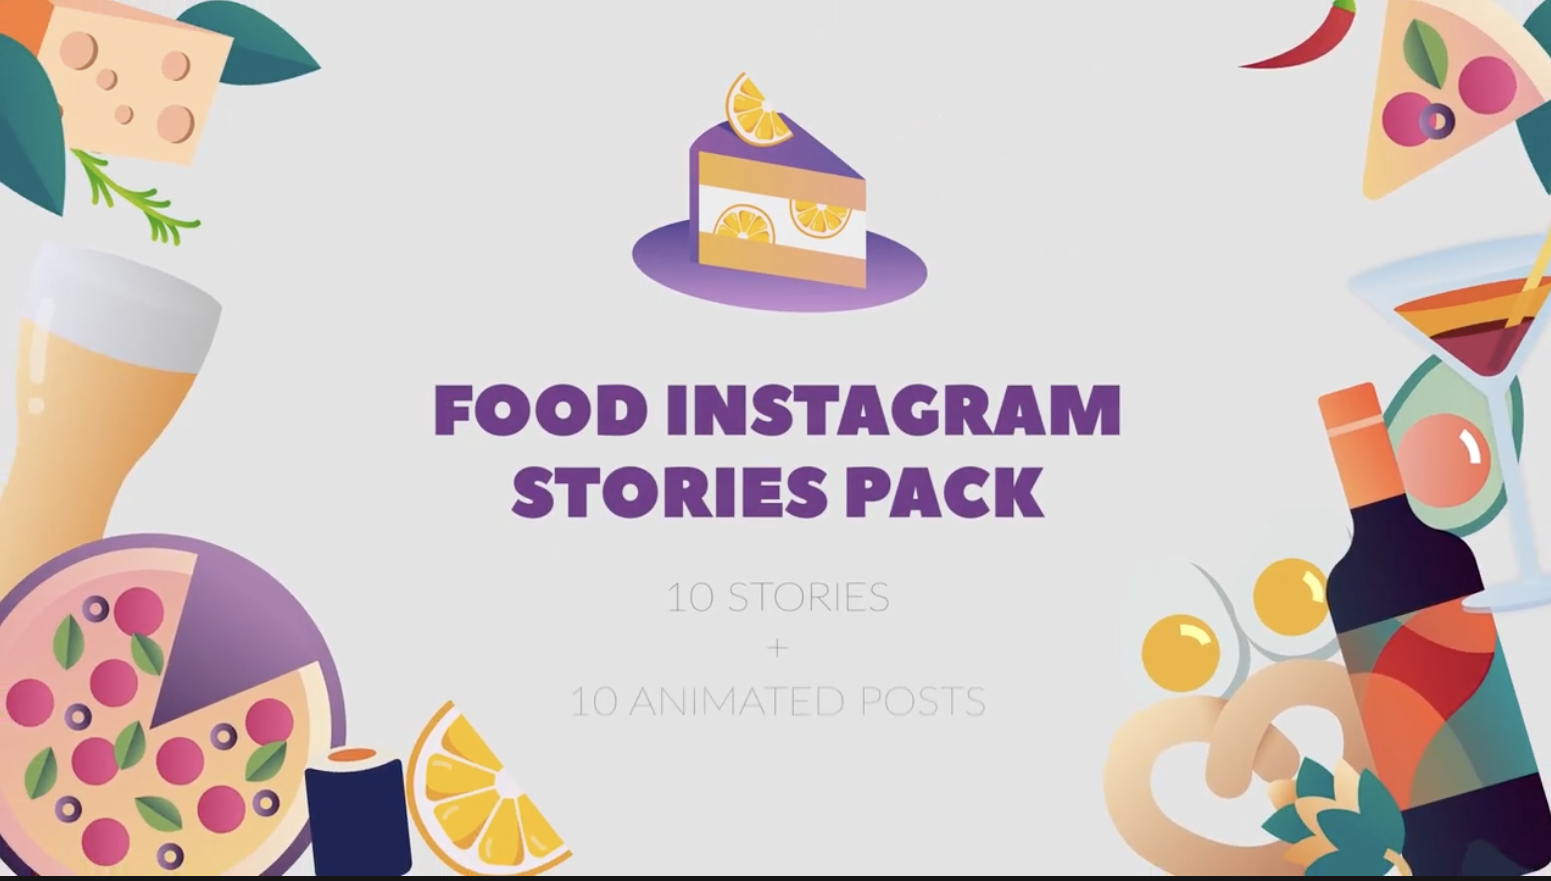 Food Stories And Posts Pack